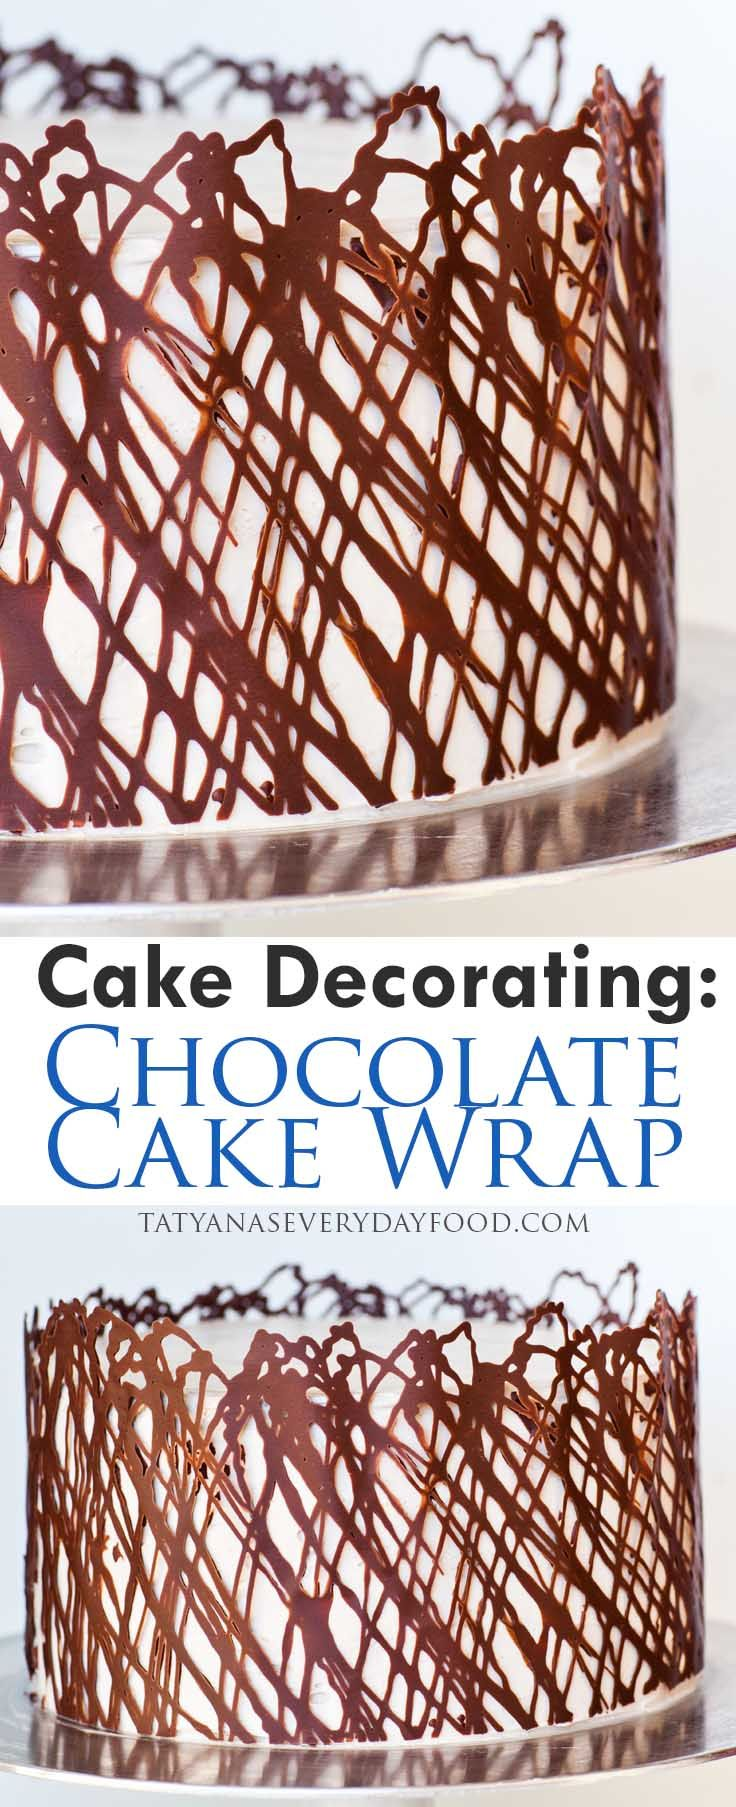 Chocolate Cake Wrap Tutorial - Tatyanas Everyday Food